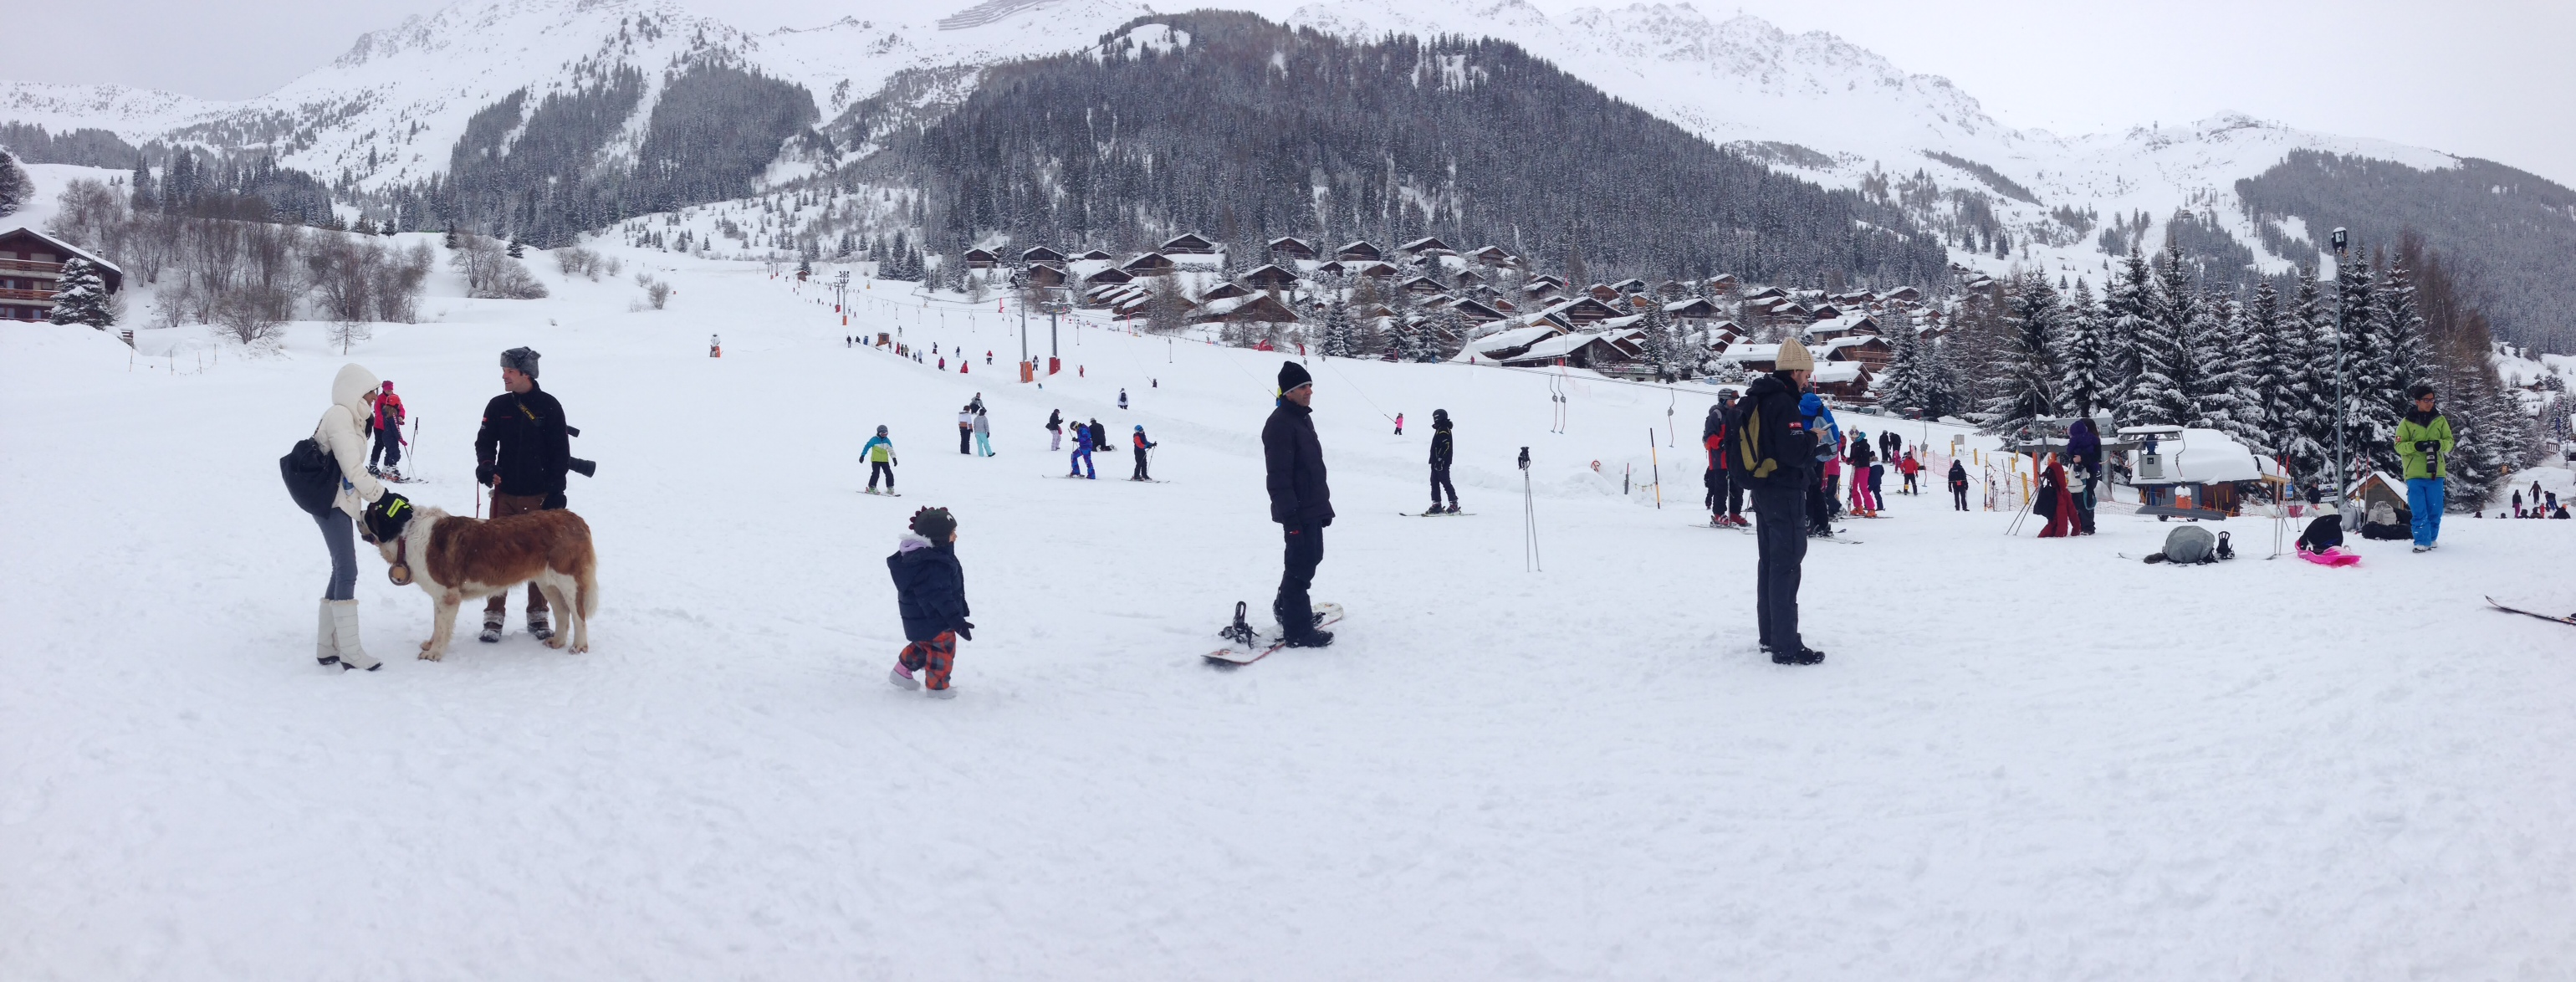 Skiing at Verbier